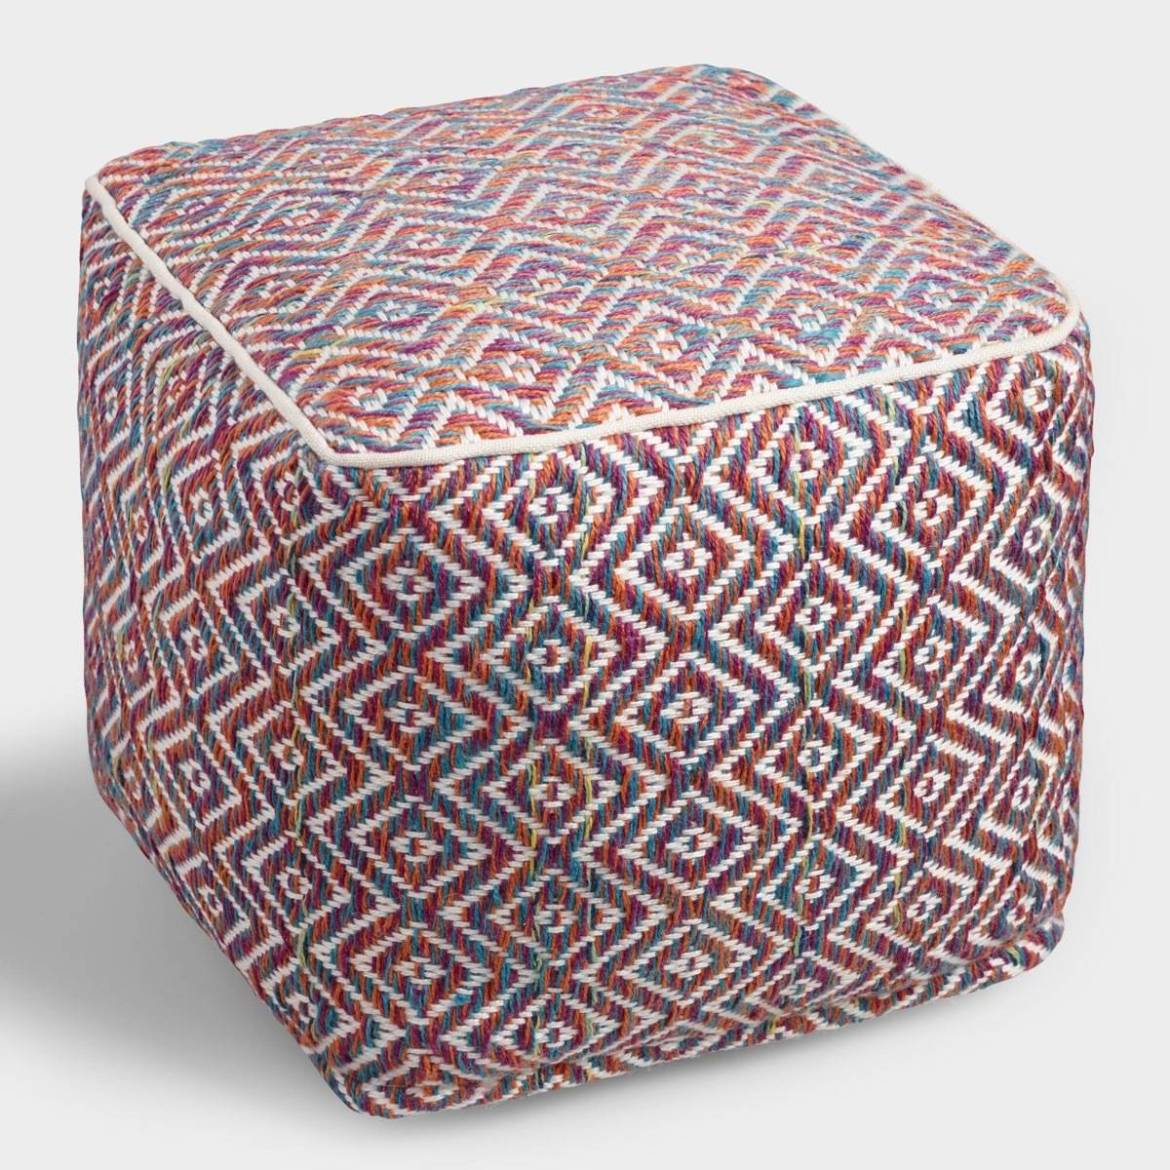 Multicolor knit pouf from Cost Plus World Market